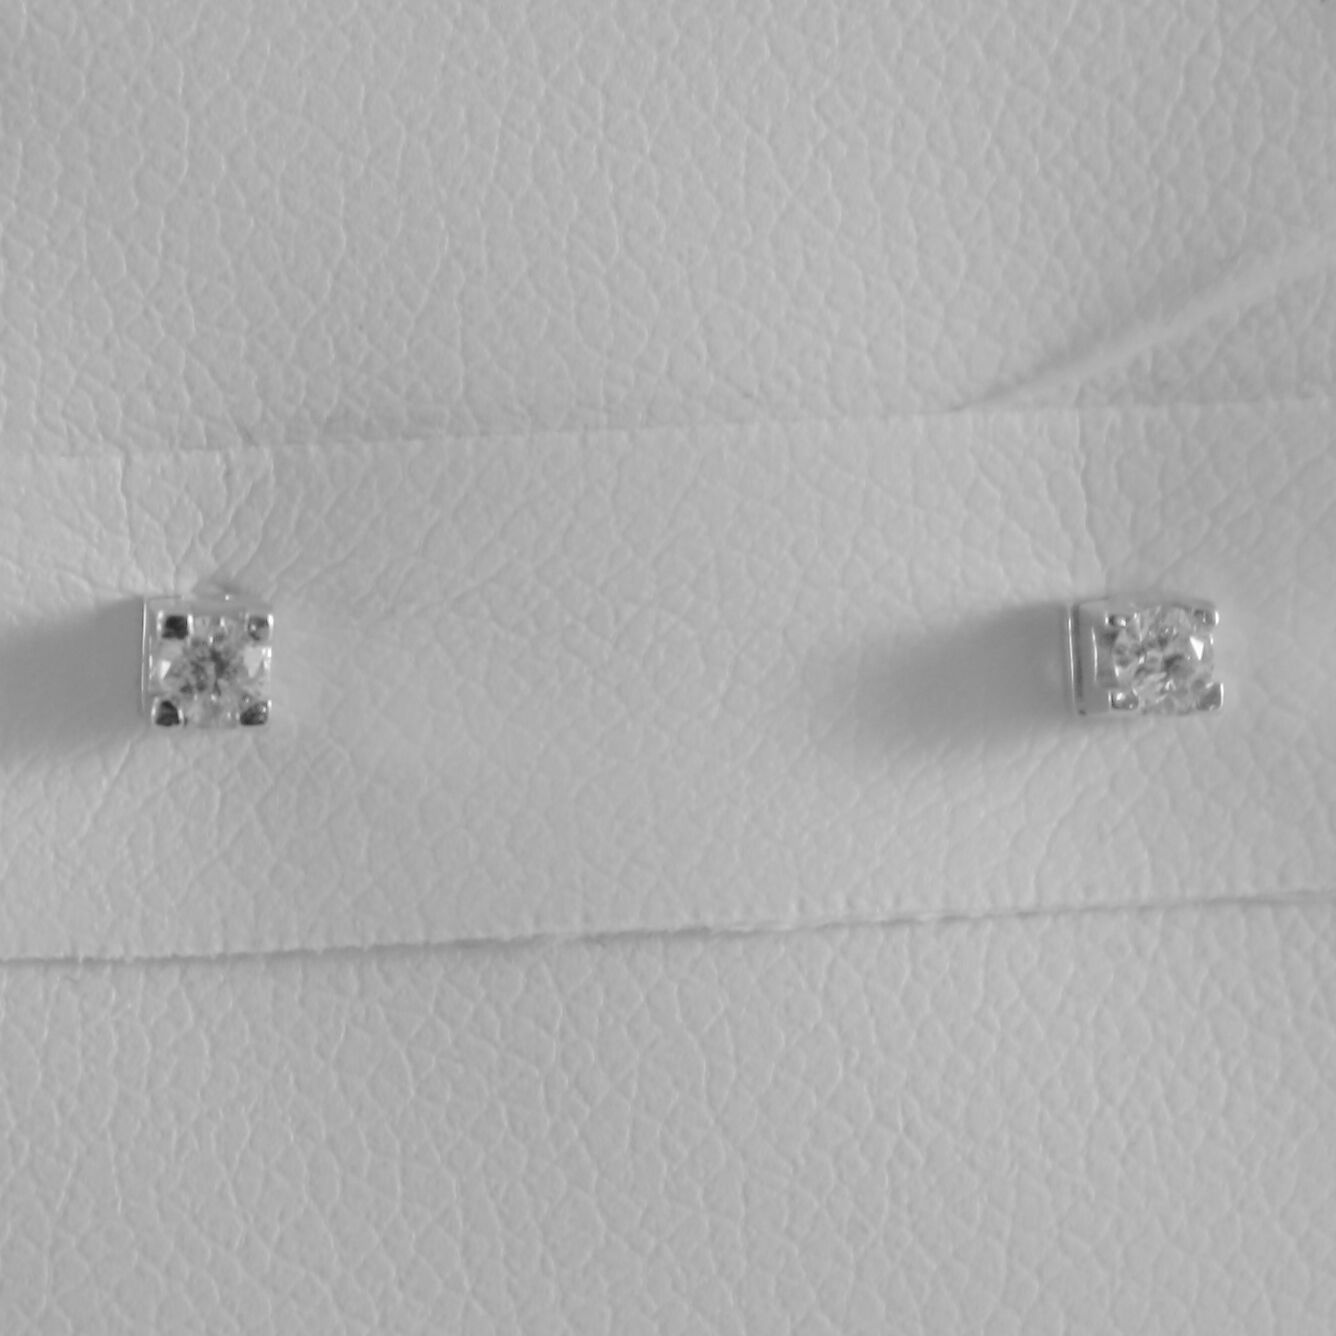 18K WHITE GOLD MINI SQUARE EARRINGS DIAMOND DIAMONDS 0.08 CT, MADE IN ITALY